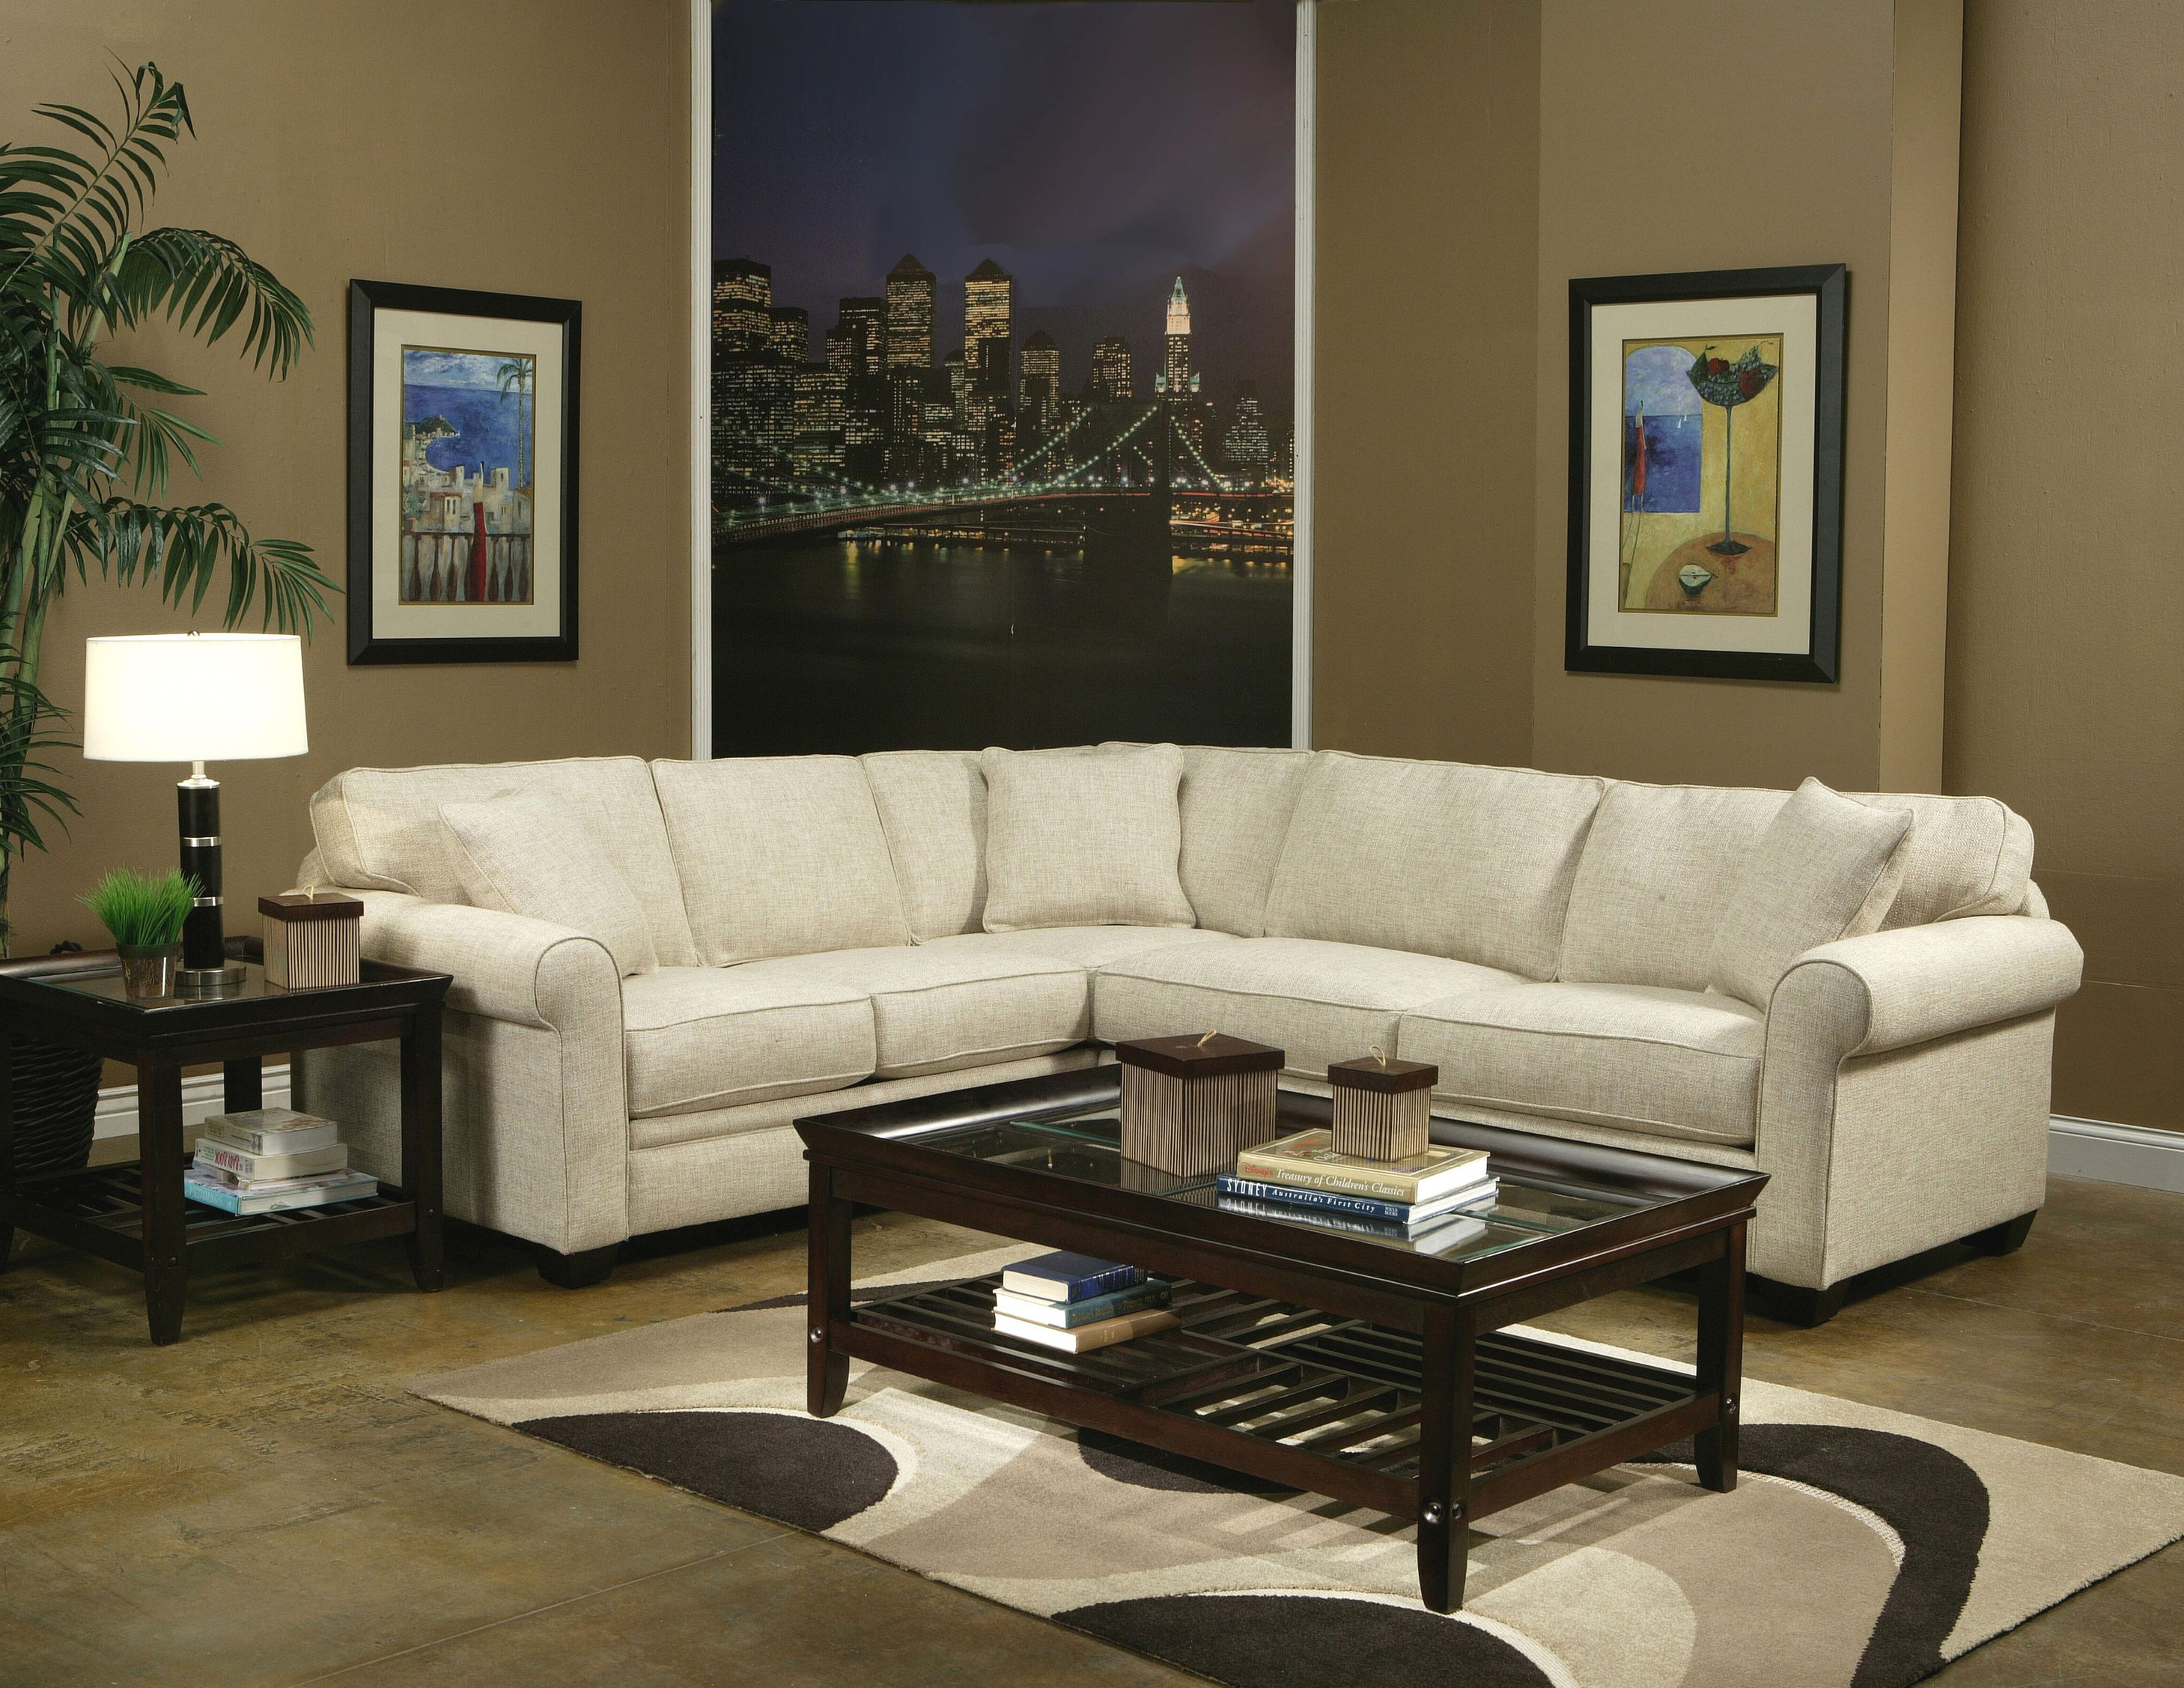 Miraculous Marino Sectional In Multiple Configurations Sofa Loveseat Unemploymentrelief Wooden Chair Designs For Living Room Unemploymentrelieforg